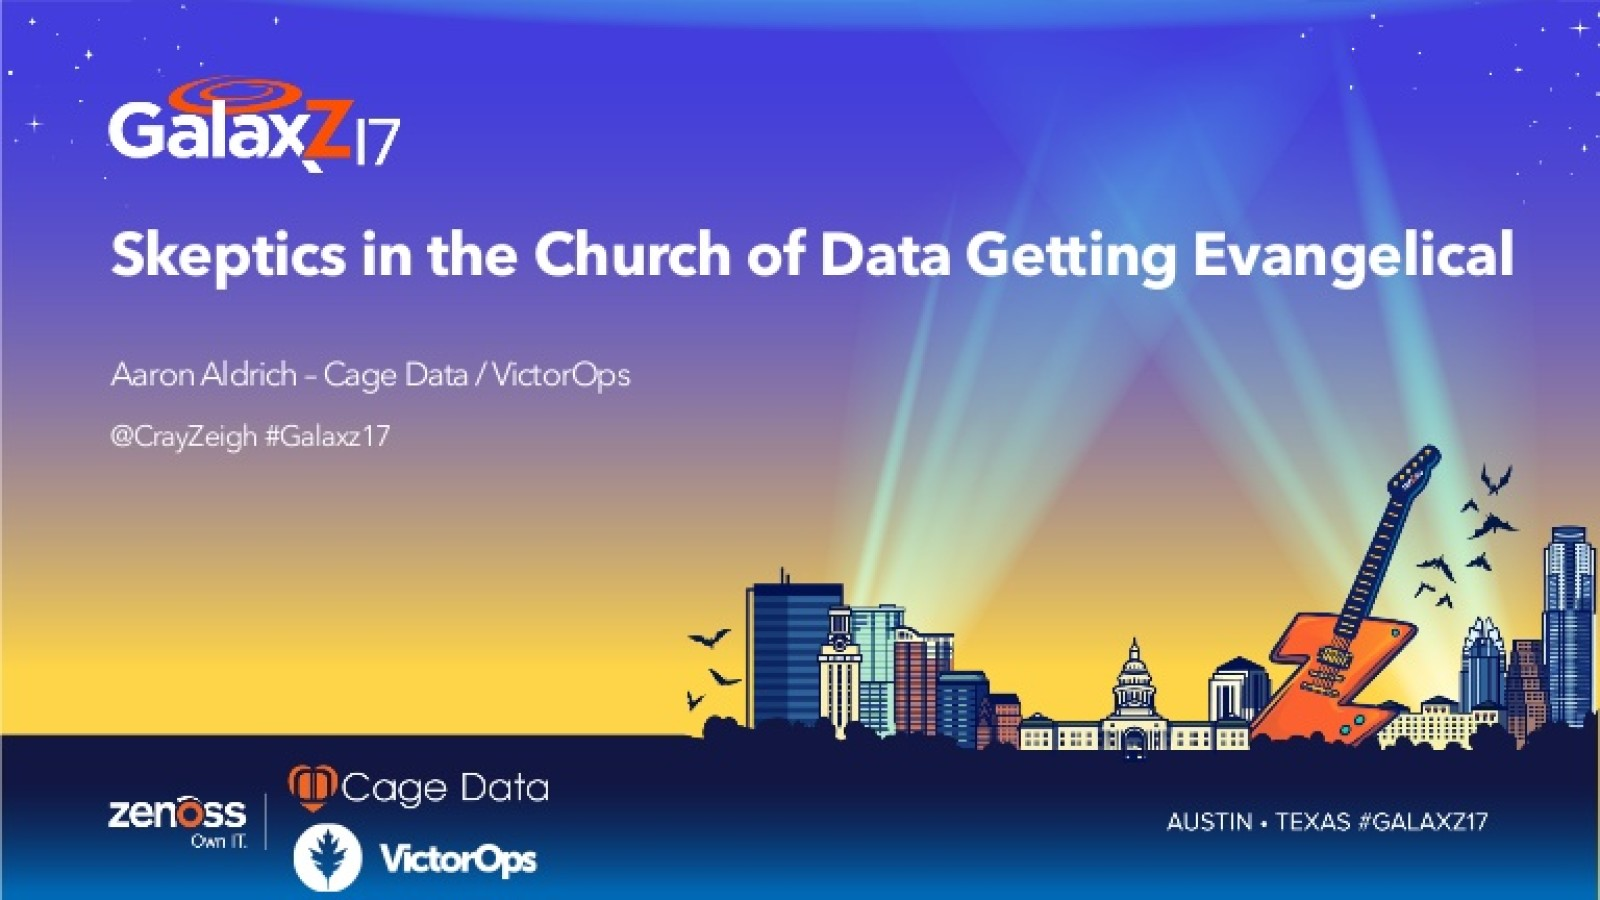 Skeptics in the Church of Data Getting Evangelical